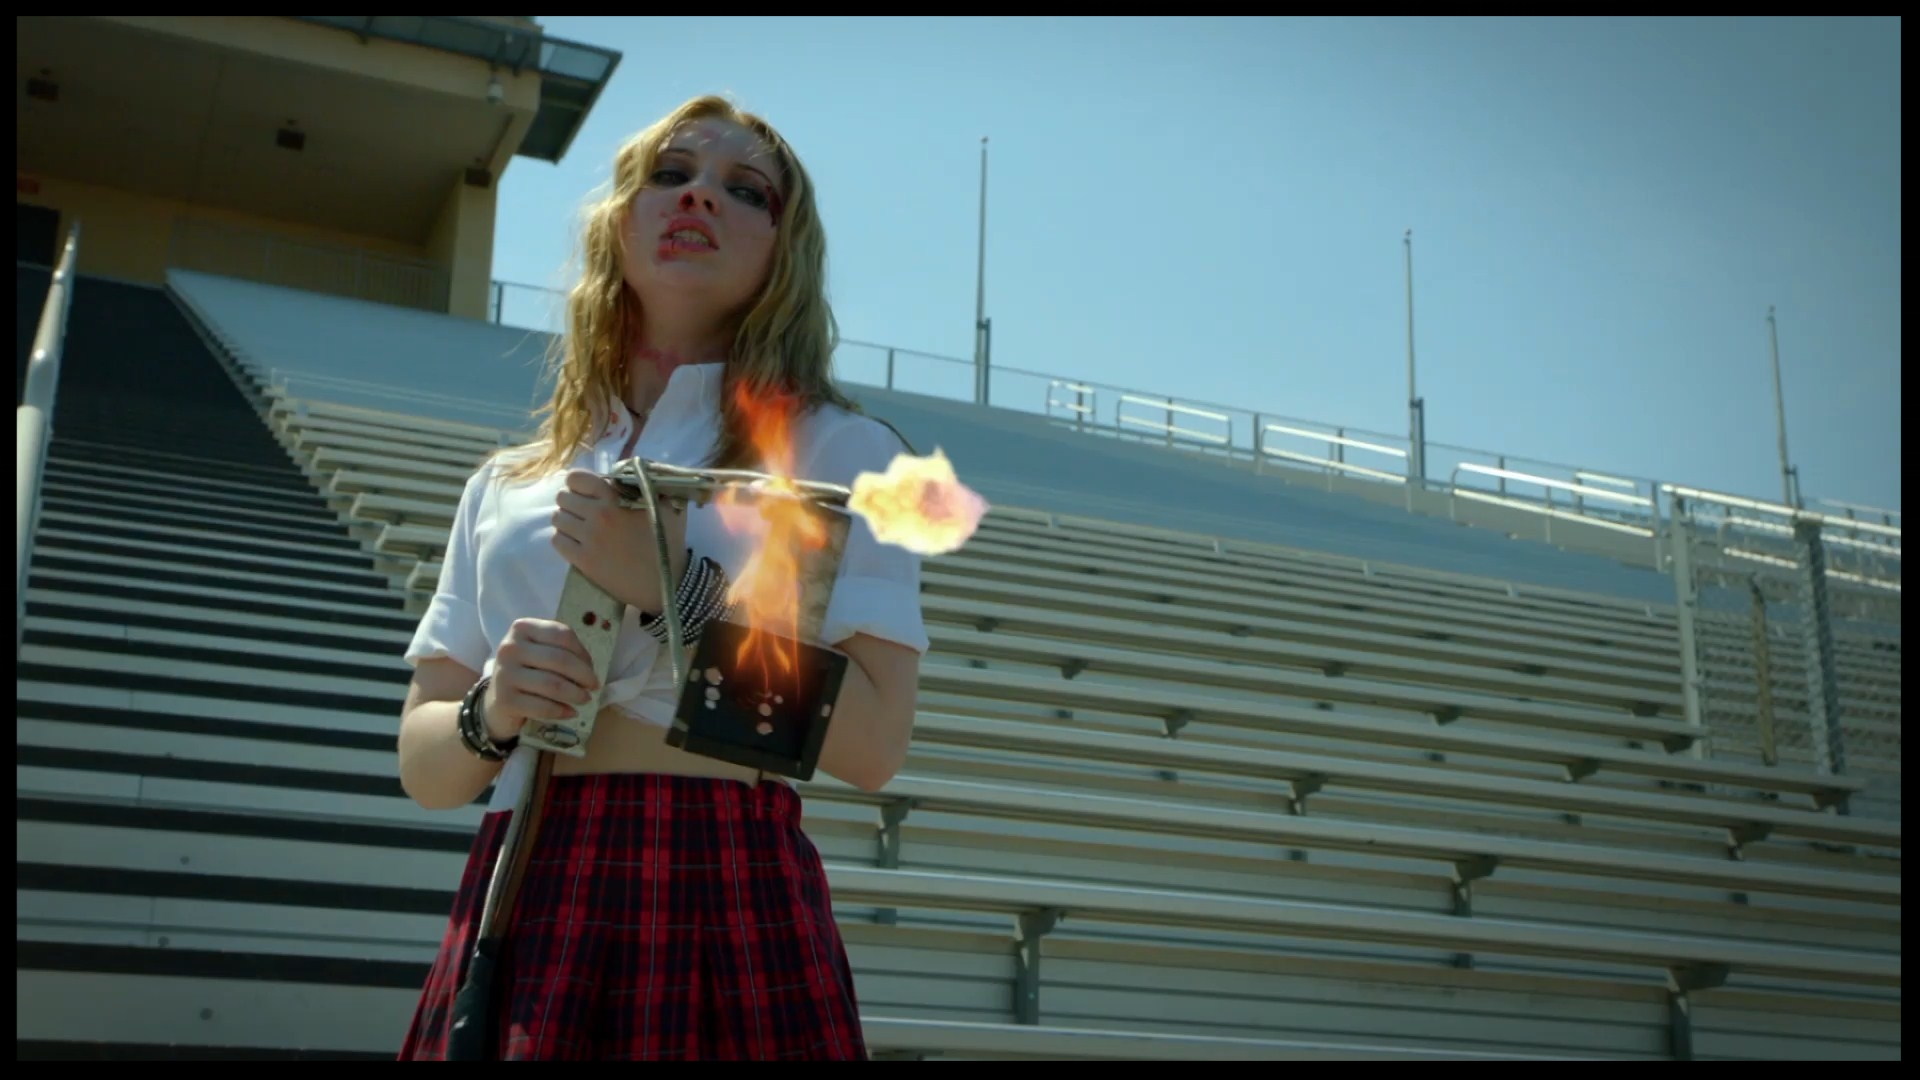 bad kids of crestview academy flamethrower.jpg